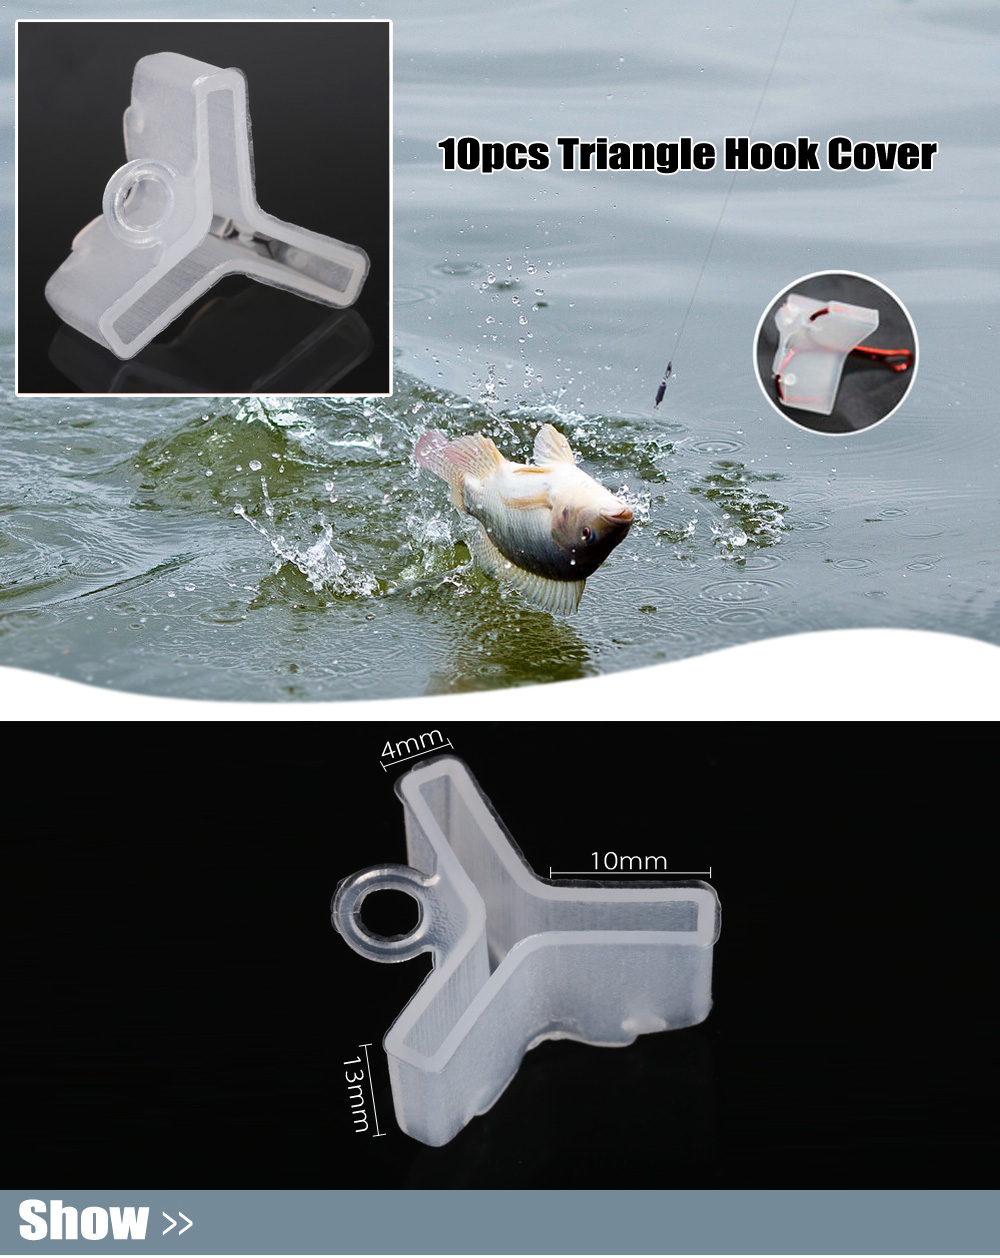 10pcs Fishing Triangle Hook Cover for No.4 / No.5 Fishhook